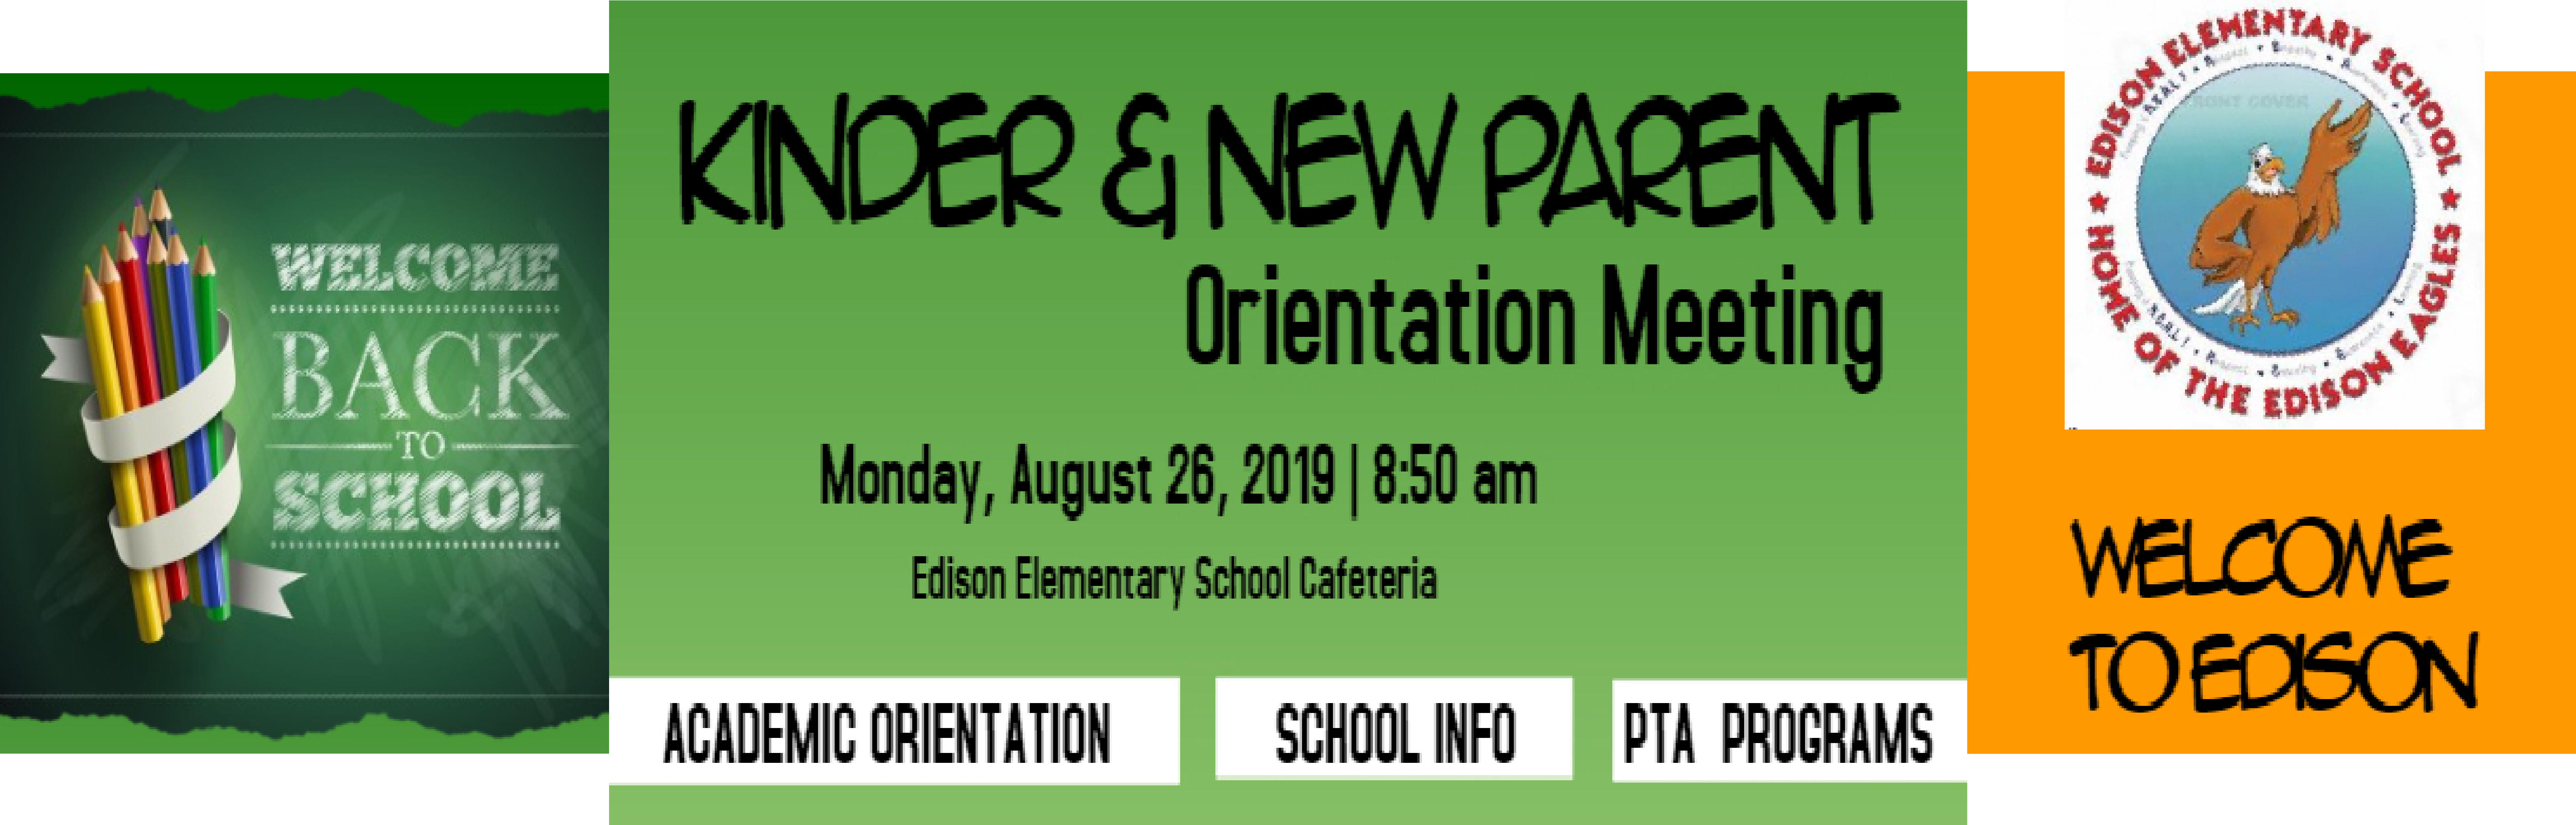 Kinder and new parent orientation meeting is on Monday, August 26th, 2019, at 8:50 a.m. in the Edison Cafeteria.